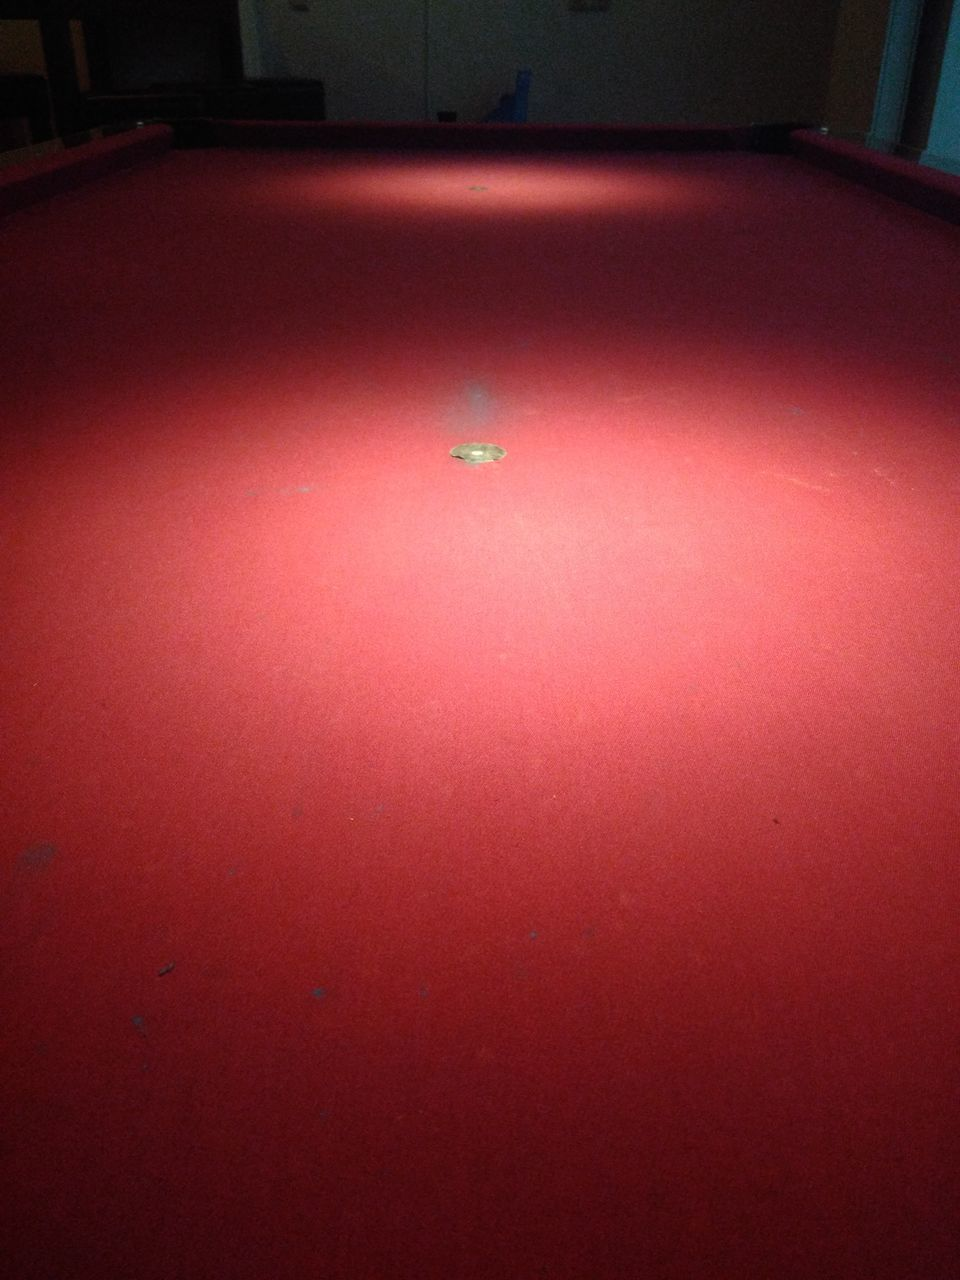 red, indoors, no people, pool table, pool - cue sport, pool ball, day